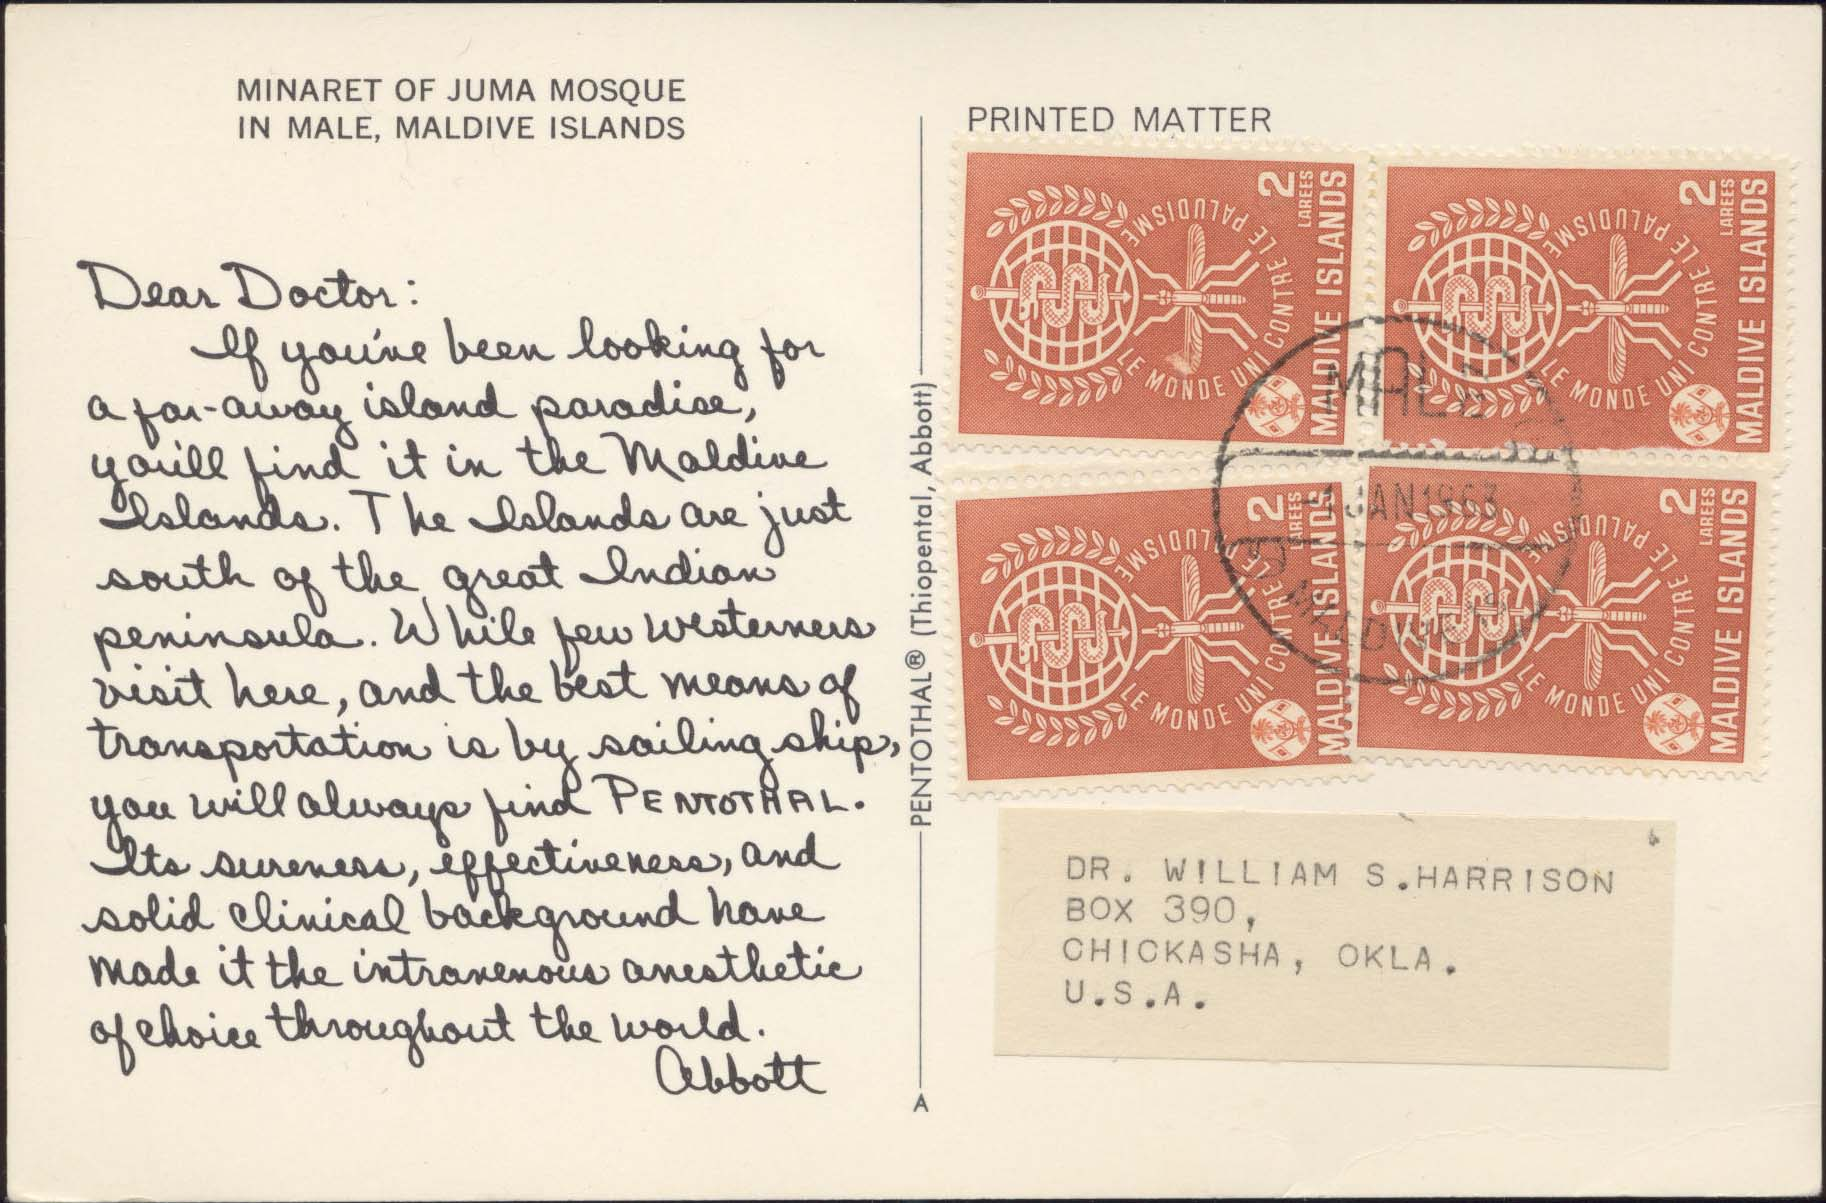 Dear Doctor Postcard - Type A - United States - 1963, Jan 1